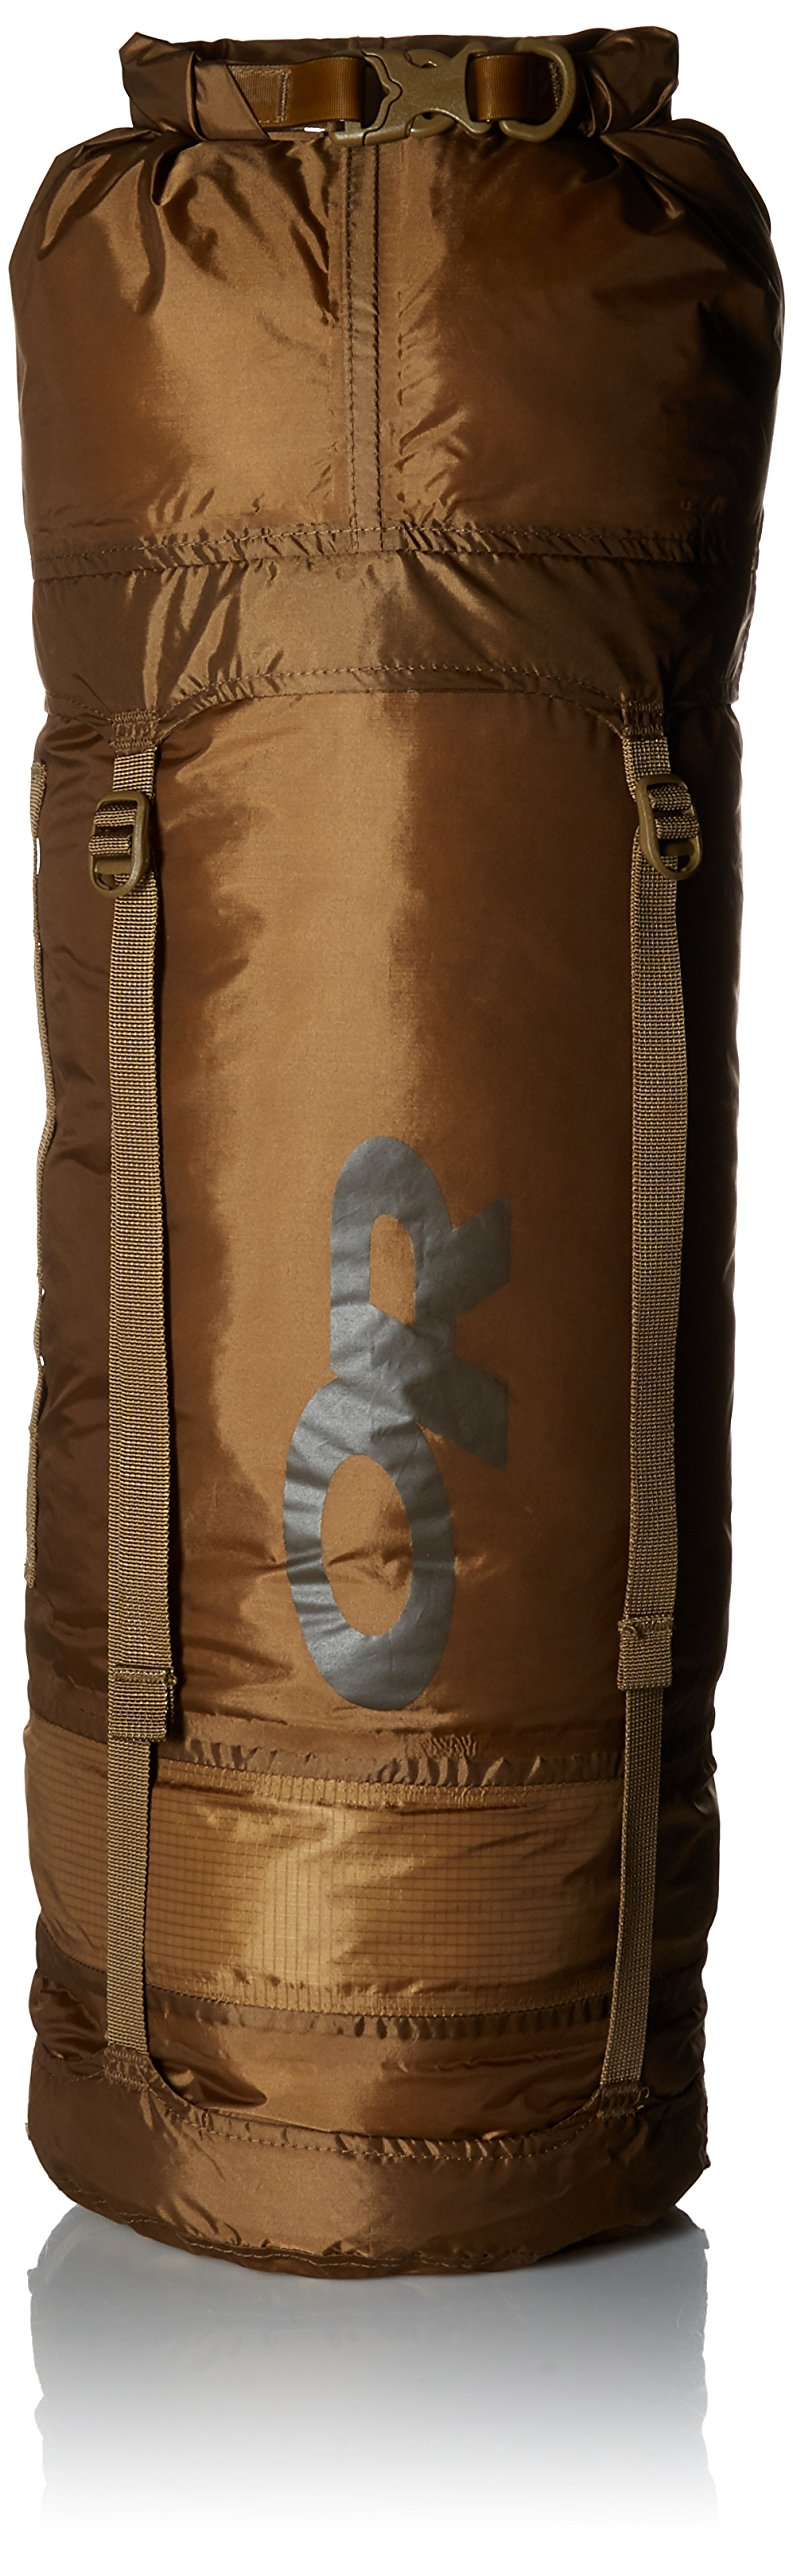 Outdoor Research Unisex Airpurge Dry Compr Sk 15l, Coyote, 1size by Outdoor Research